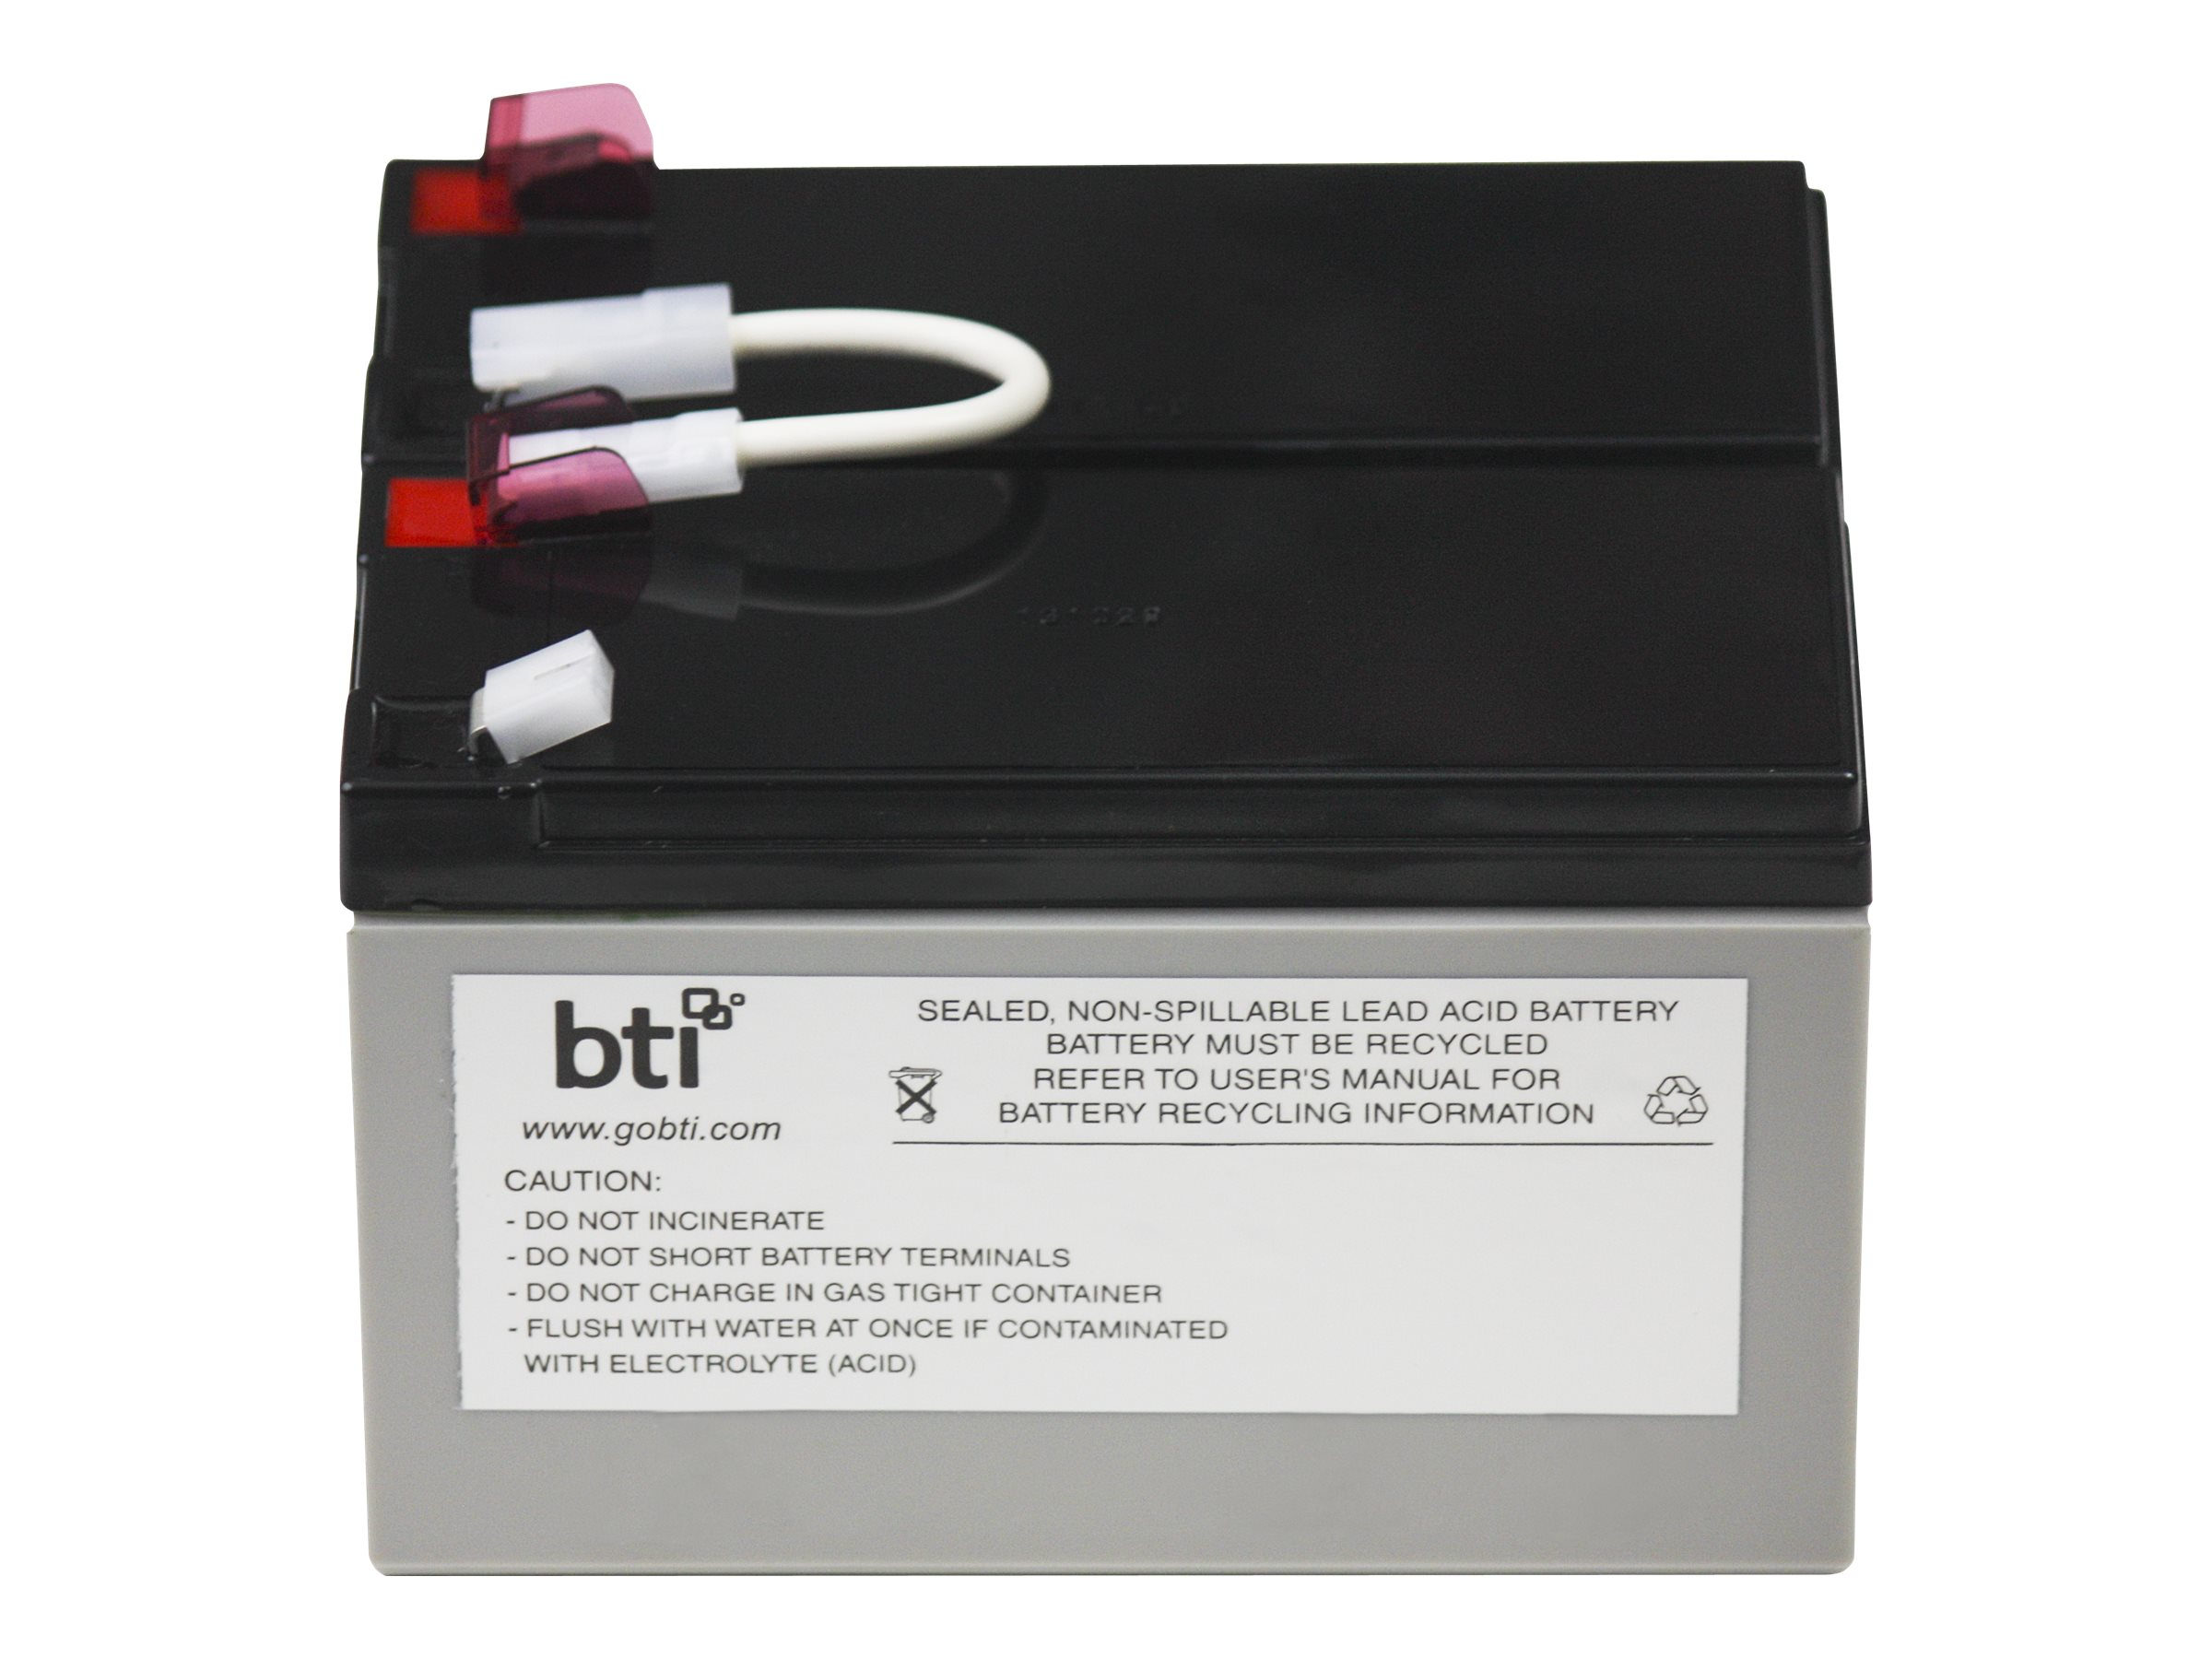 BTI Replacement Battery Cartridge APCRBC109 for BX1300LCD UPS, APCRBC109-SLA109, 13047625, Batteries - Other